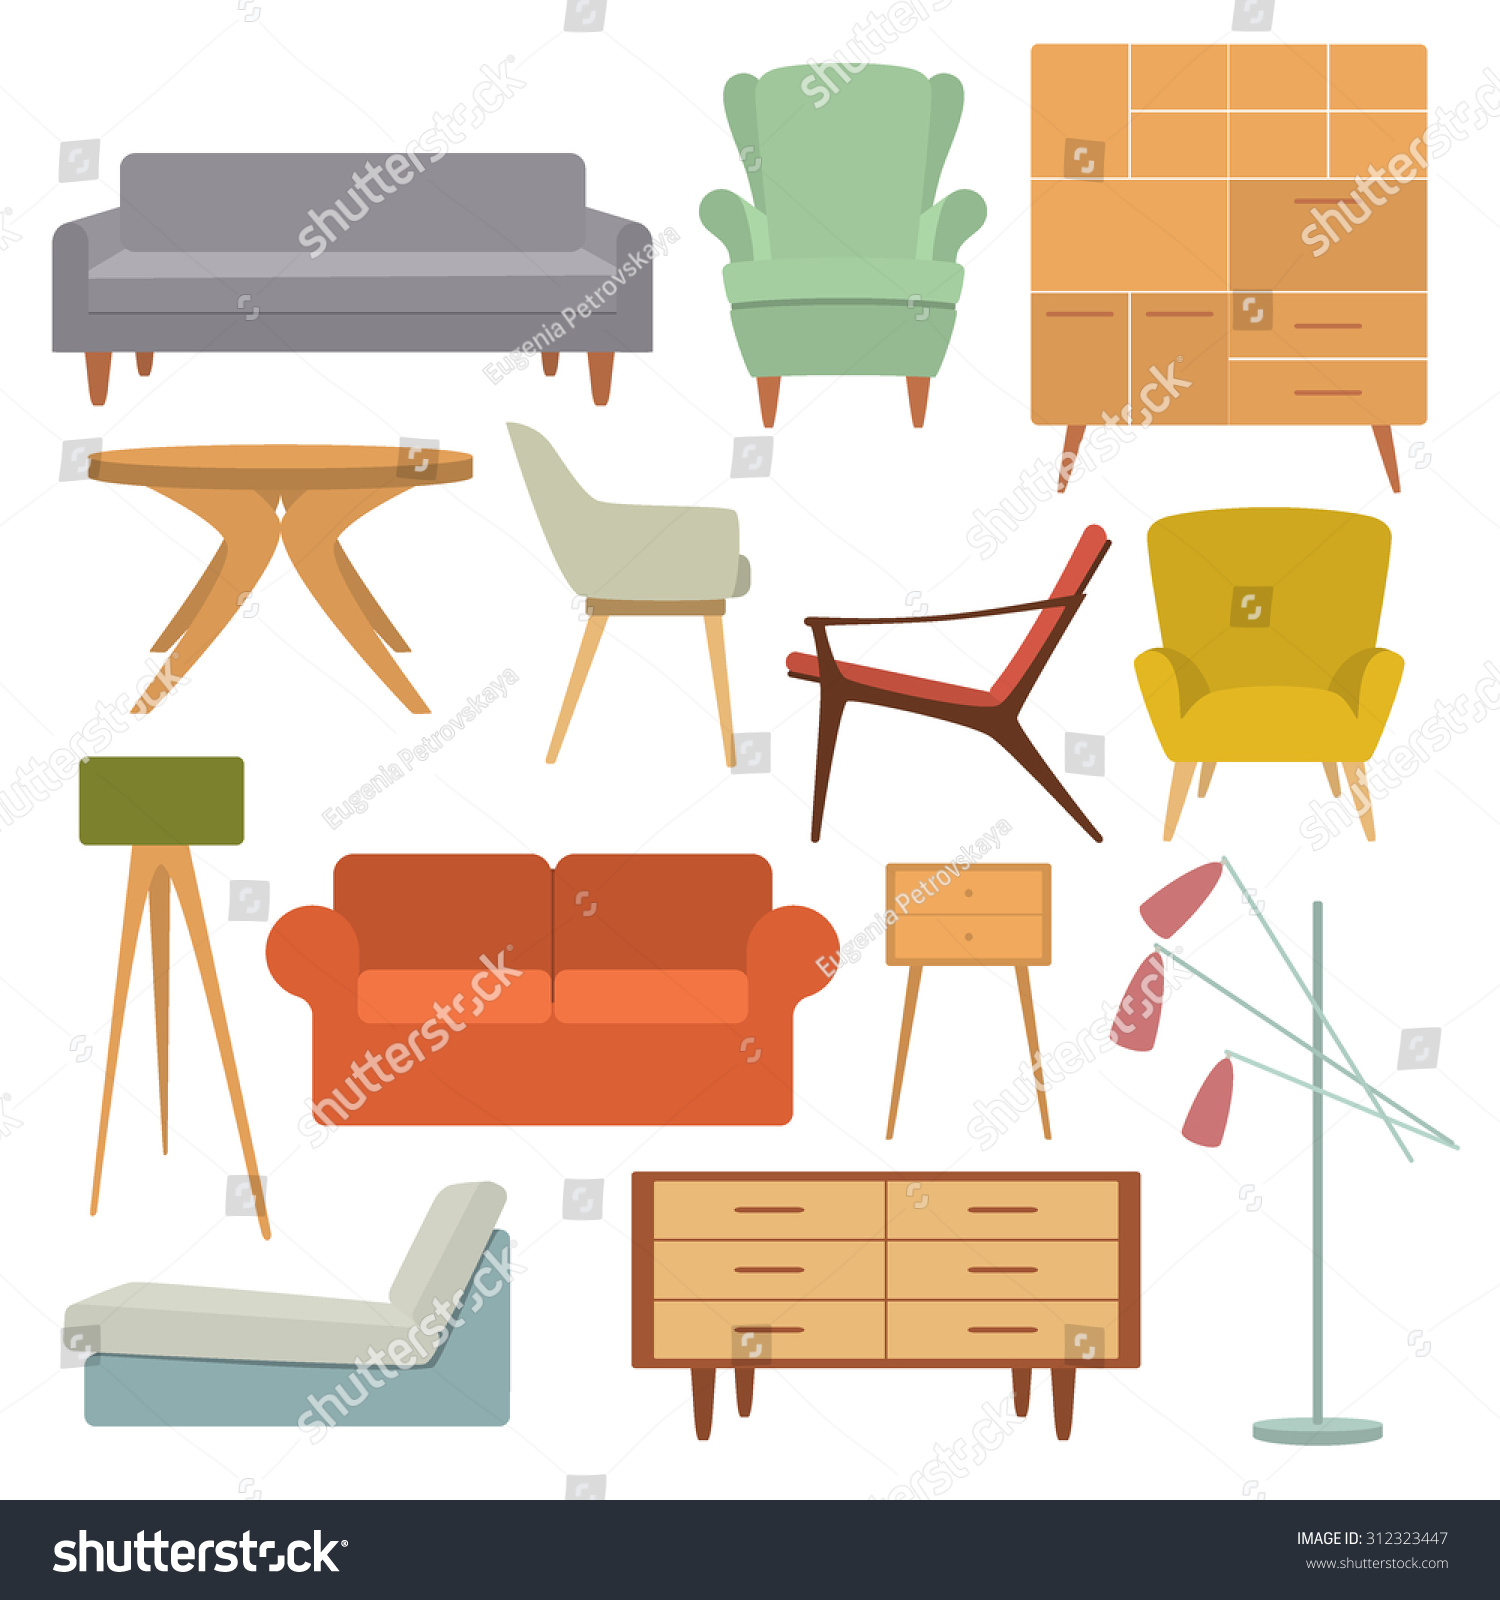 Vector illustration of living room furniture in mid century modern style beautiful design elements